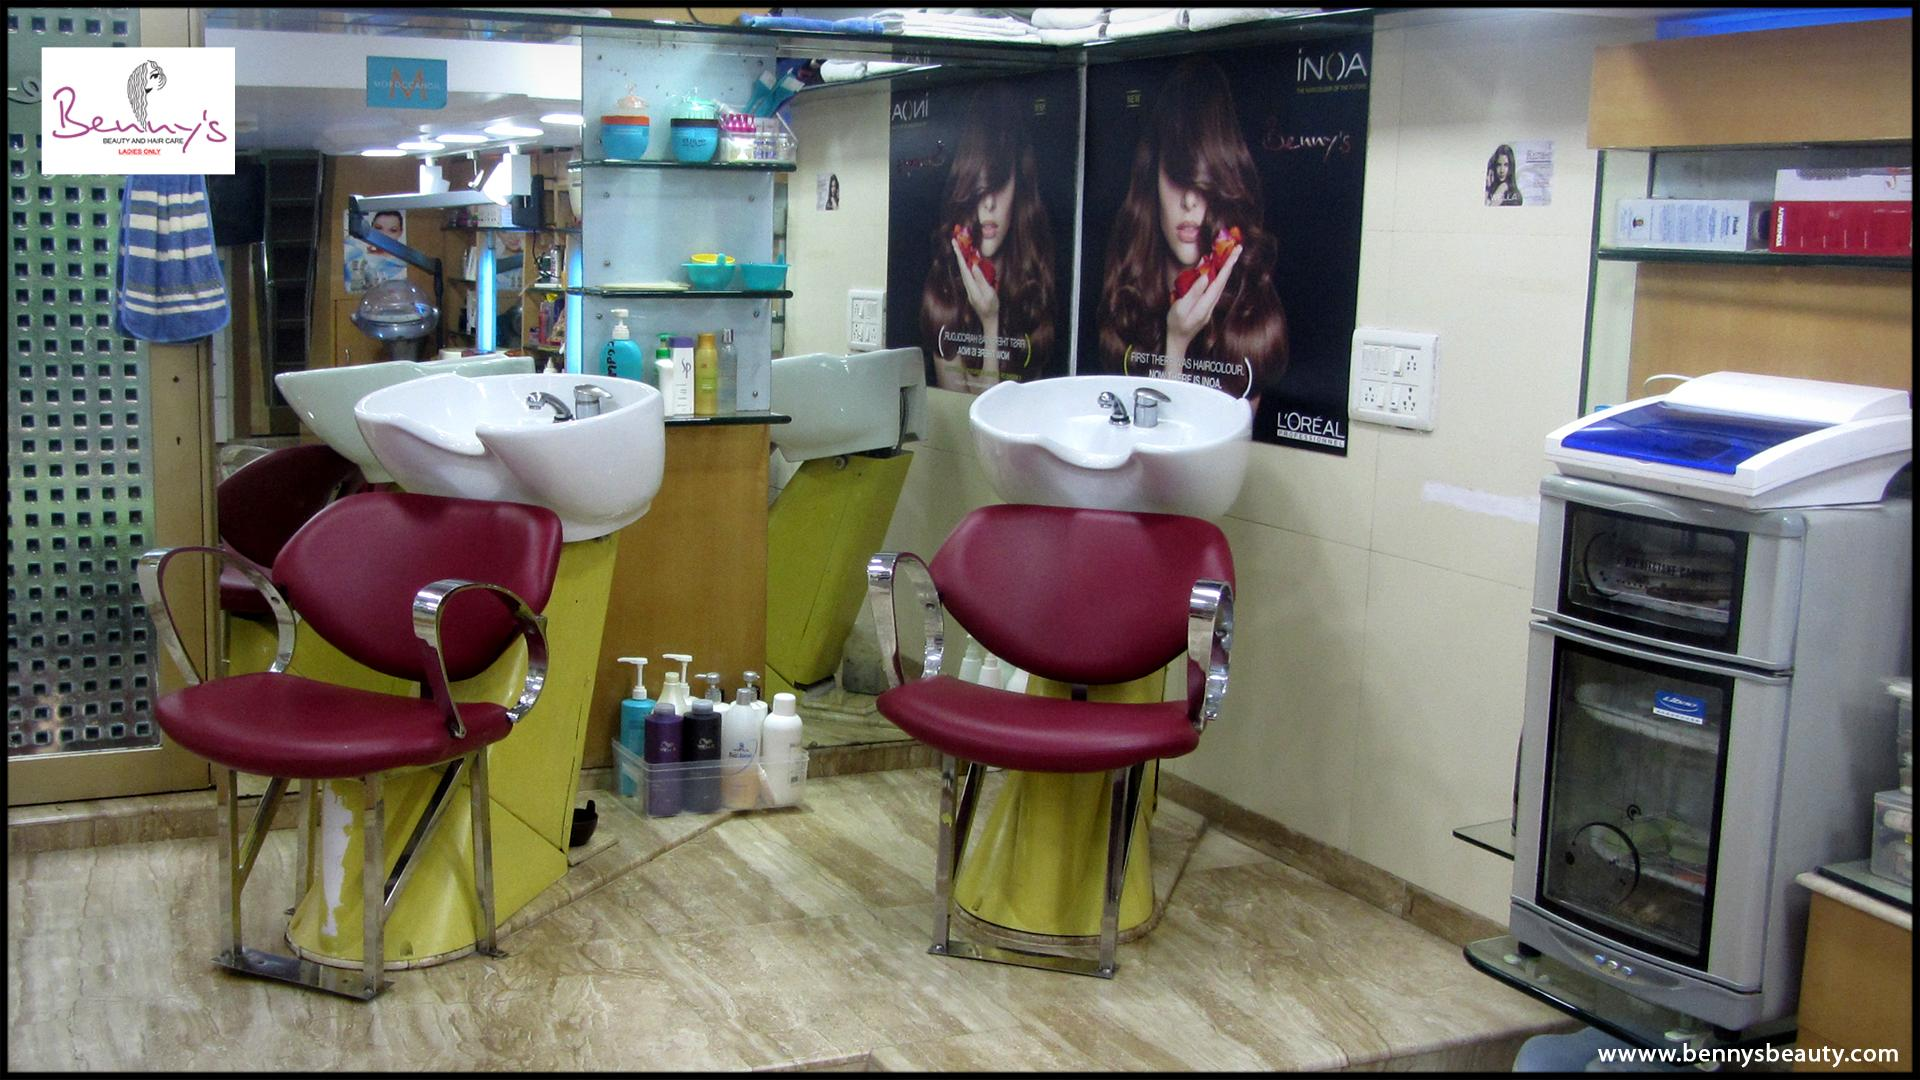 Bennys-Beauty-Salon---127